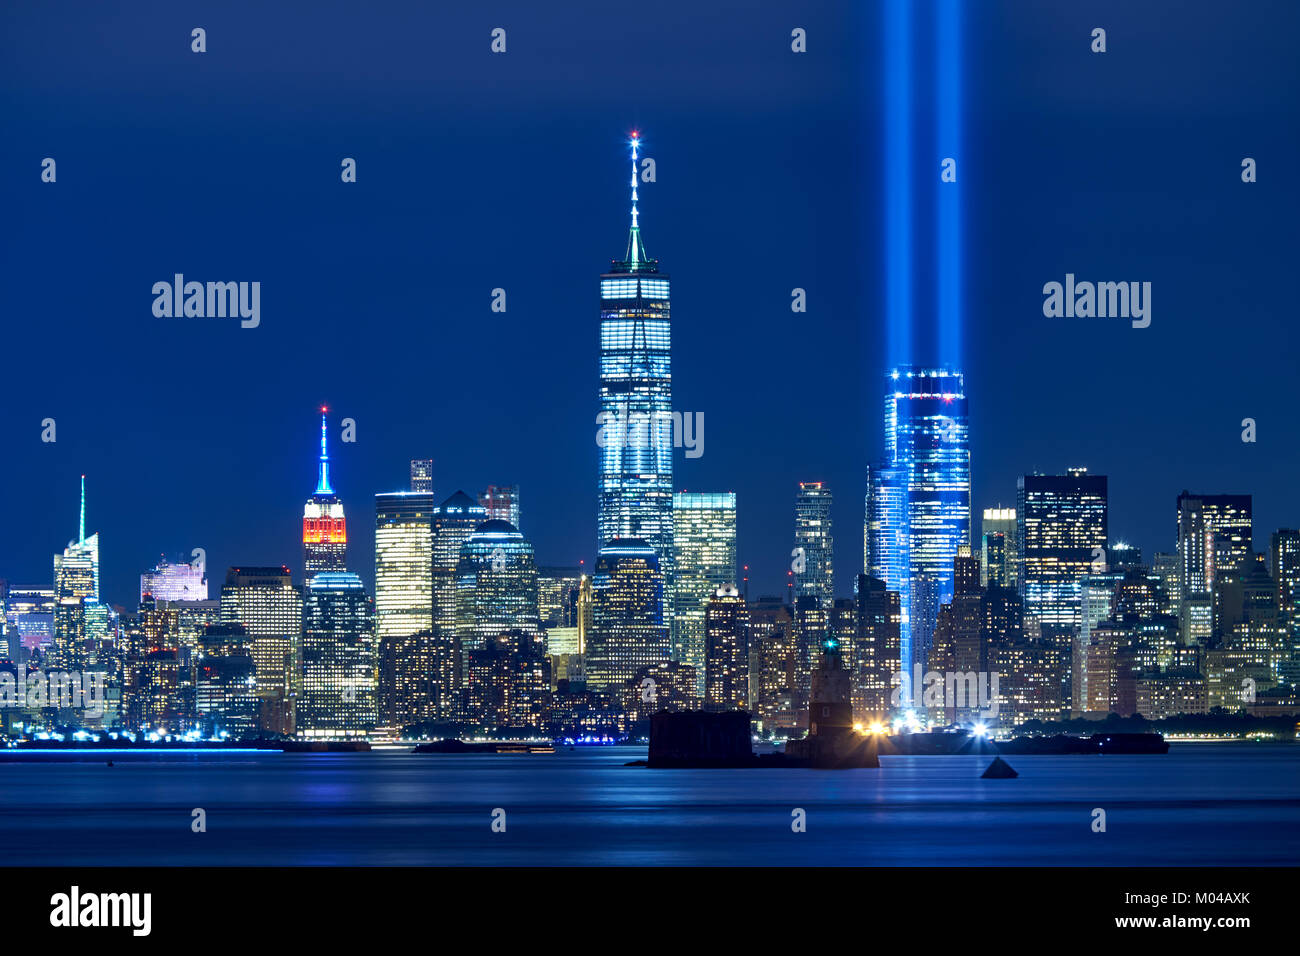 The two beams of the Tribute in Light with skycrapers of Financial District at night. Lower Manhattan, New York - Stock Image